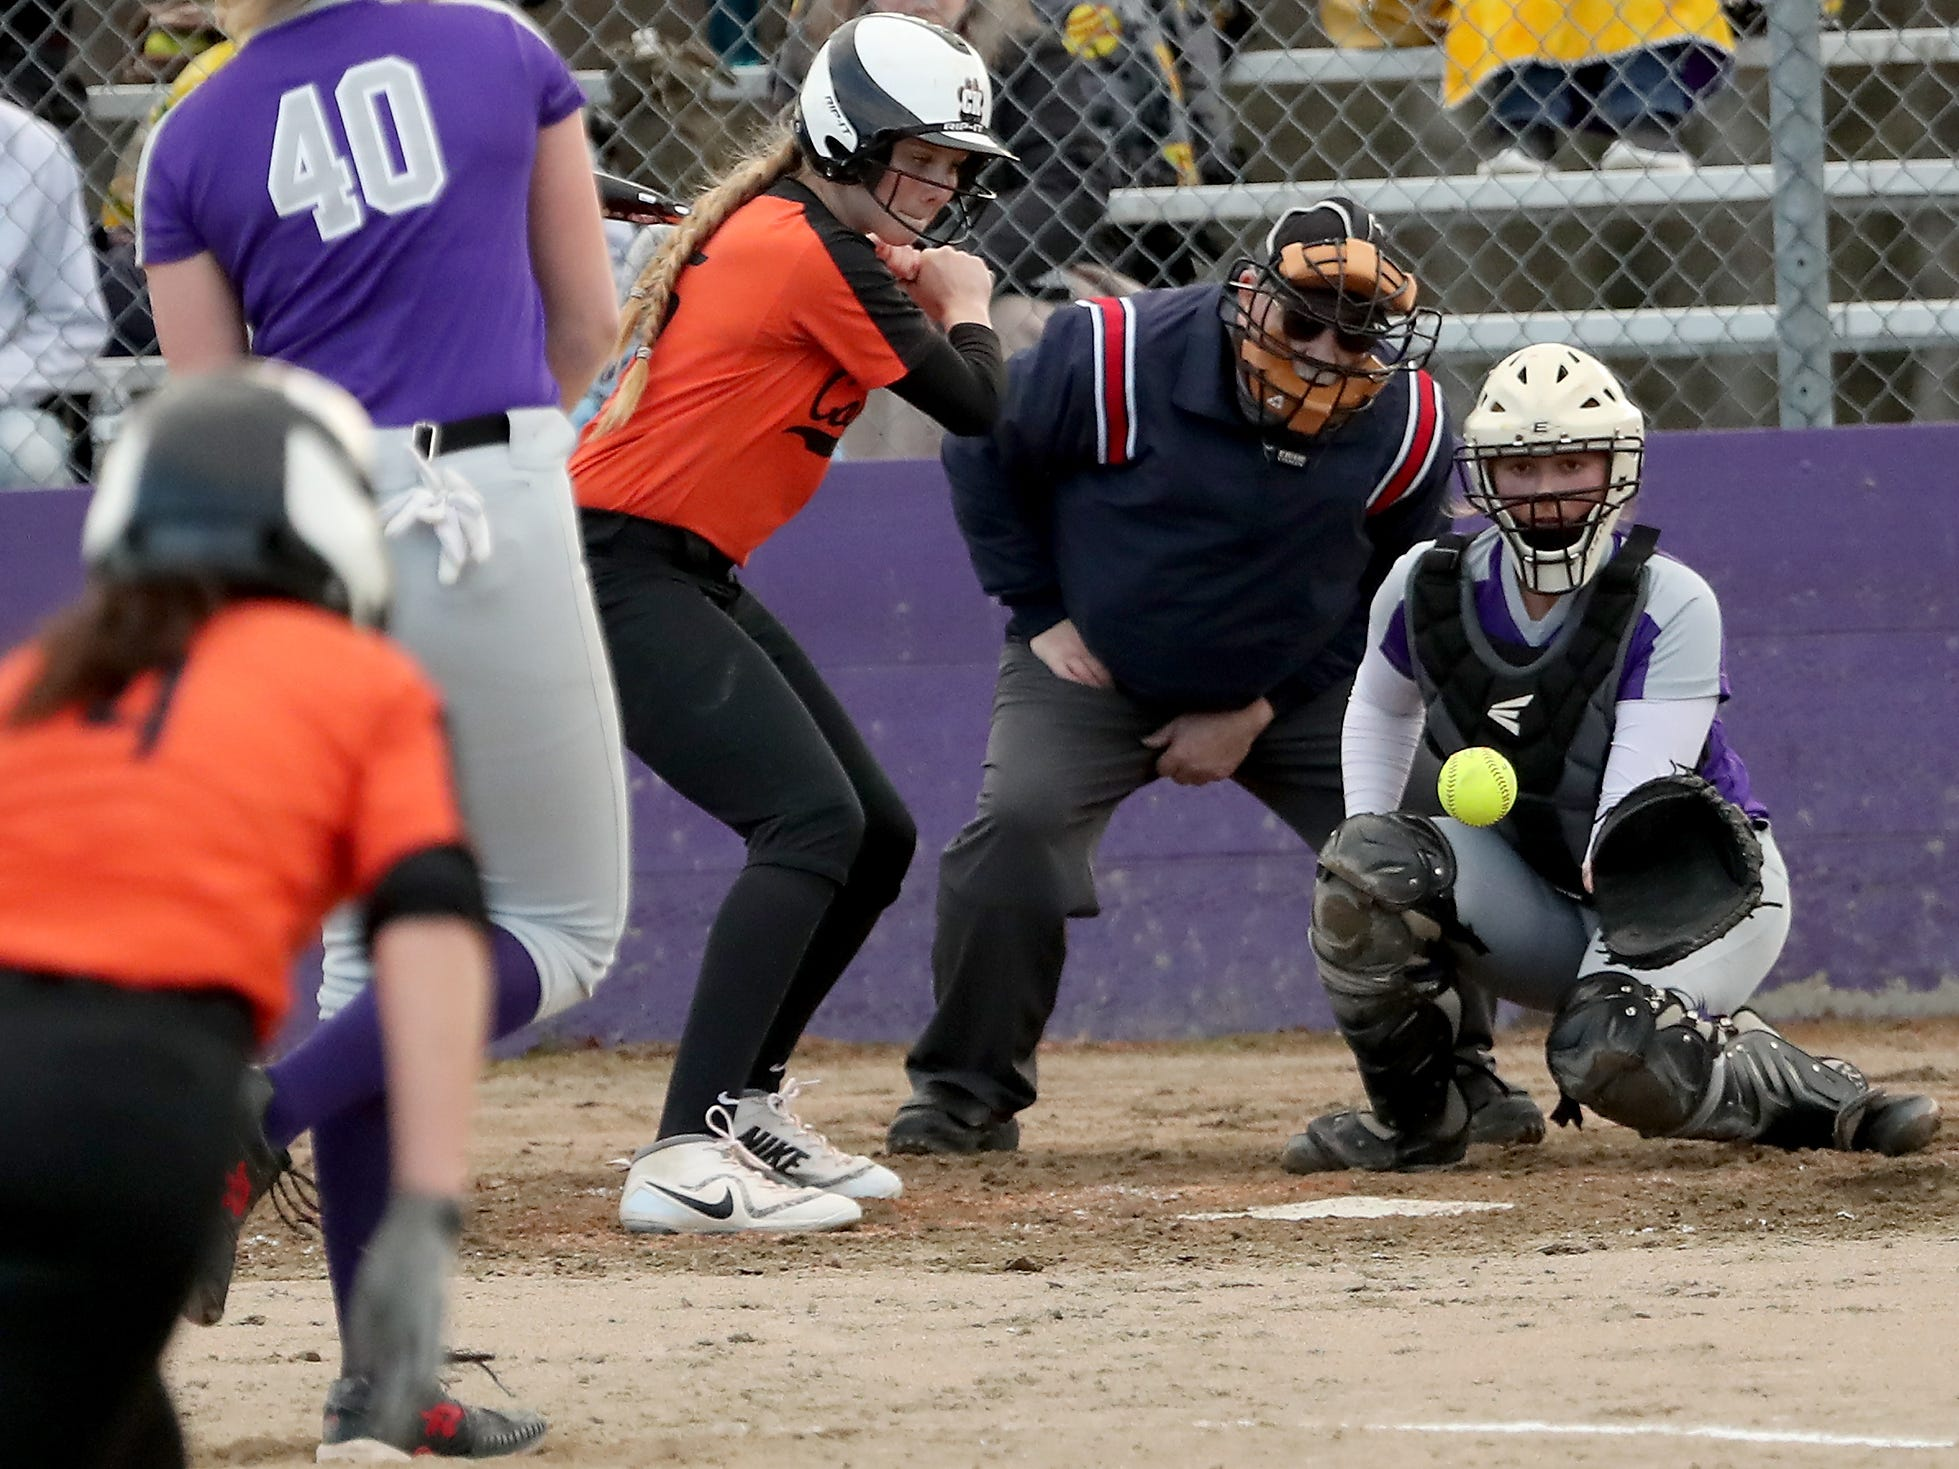 North Kitsap catcher Lamara Villiard makes a catch against Central Kitsap Softball in Poulsbo on Wednesday, March 13, 2019.